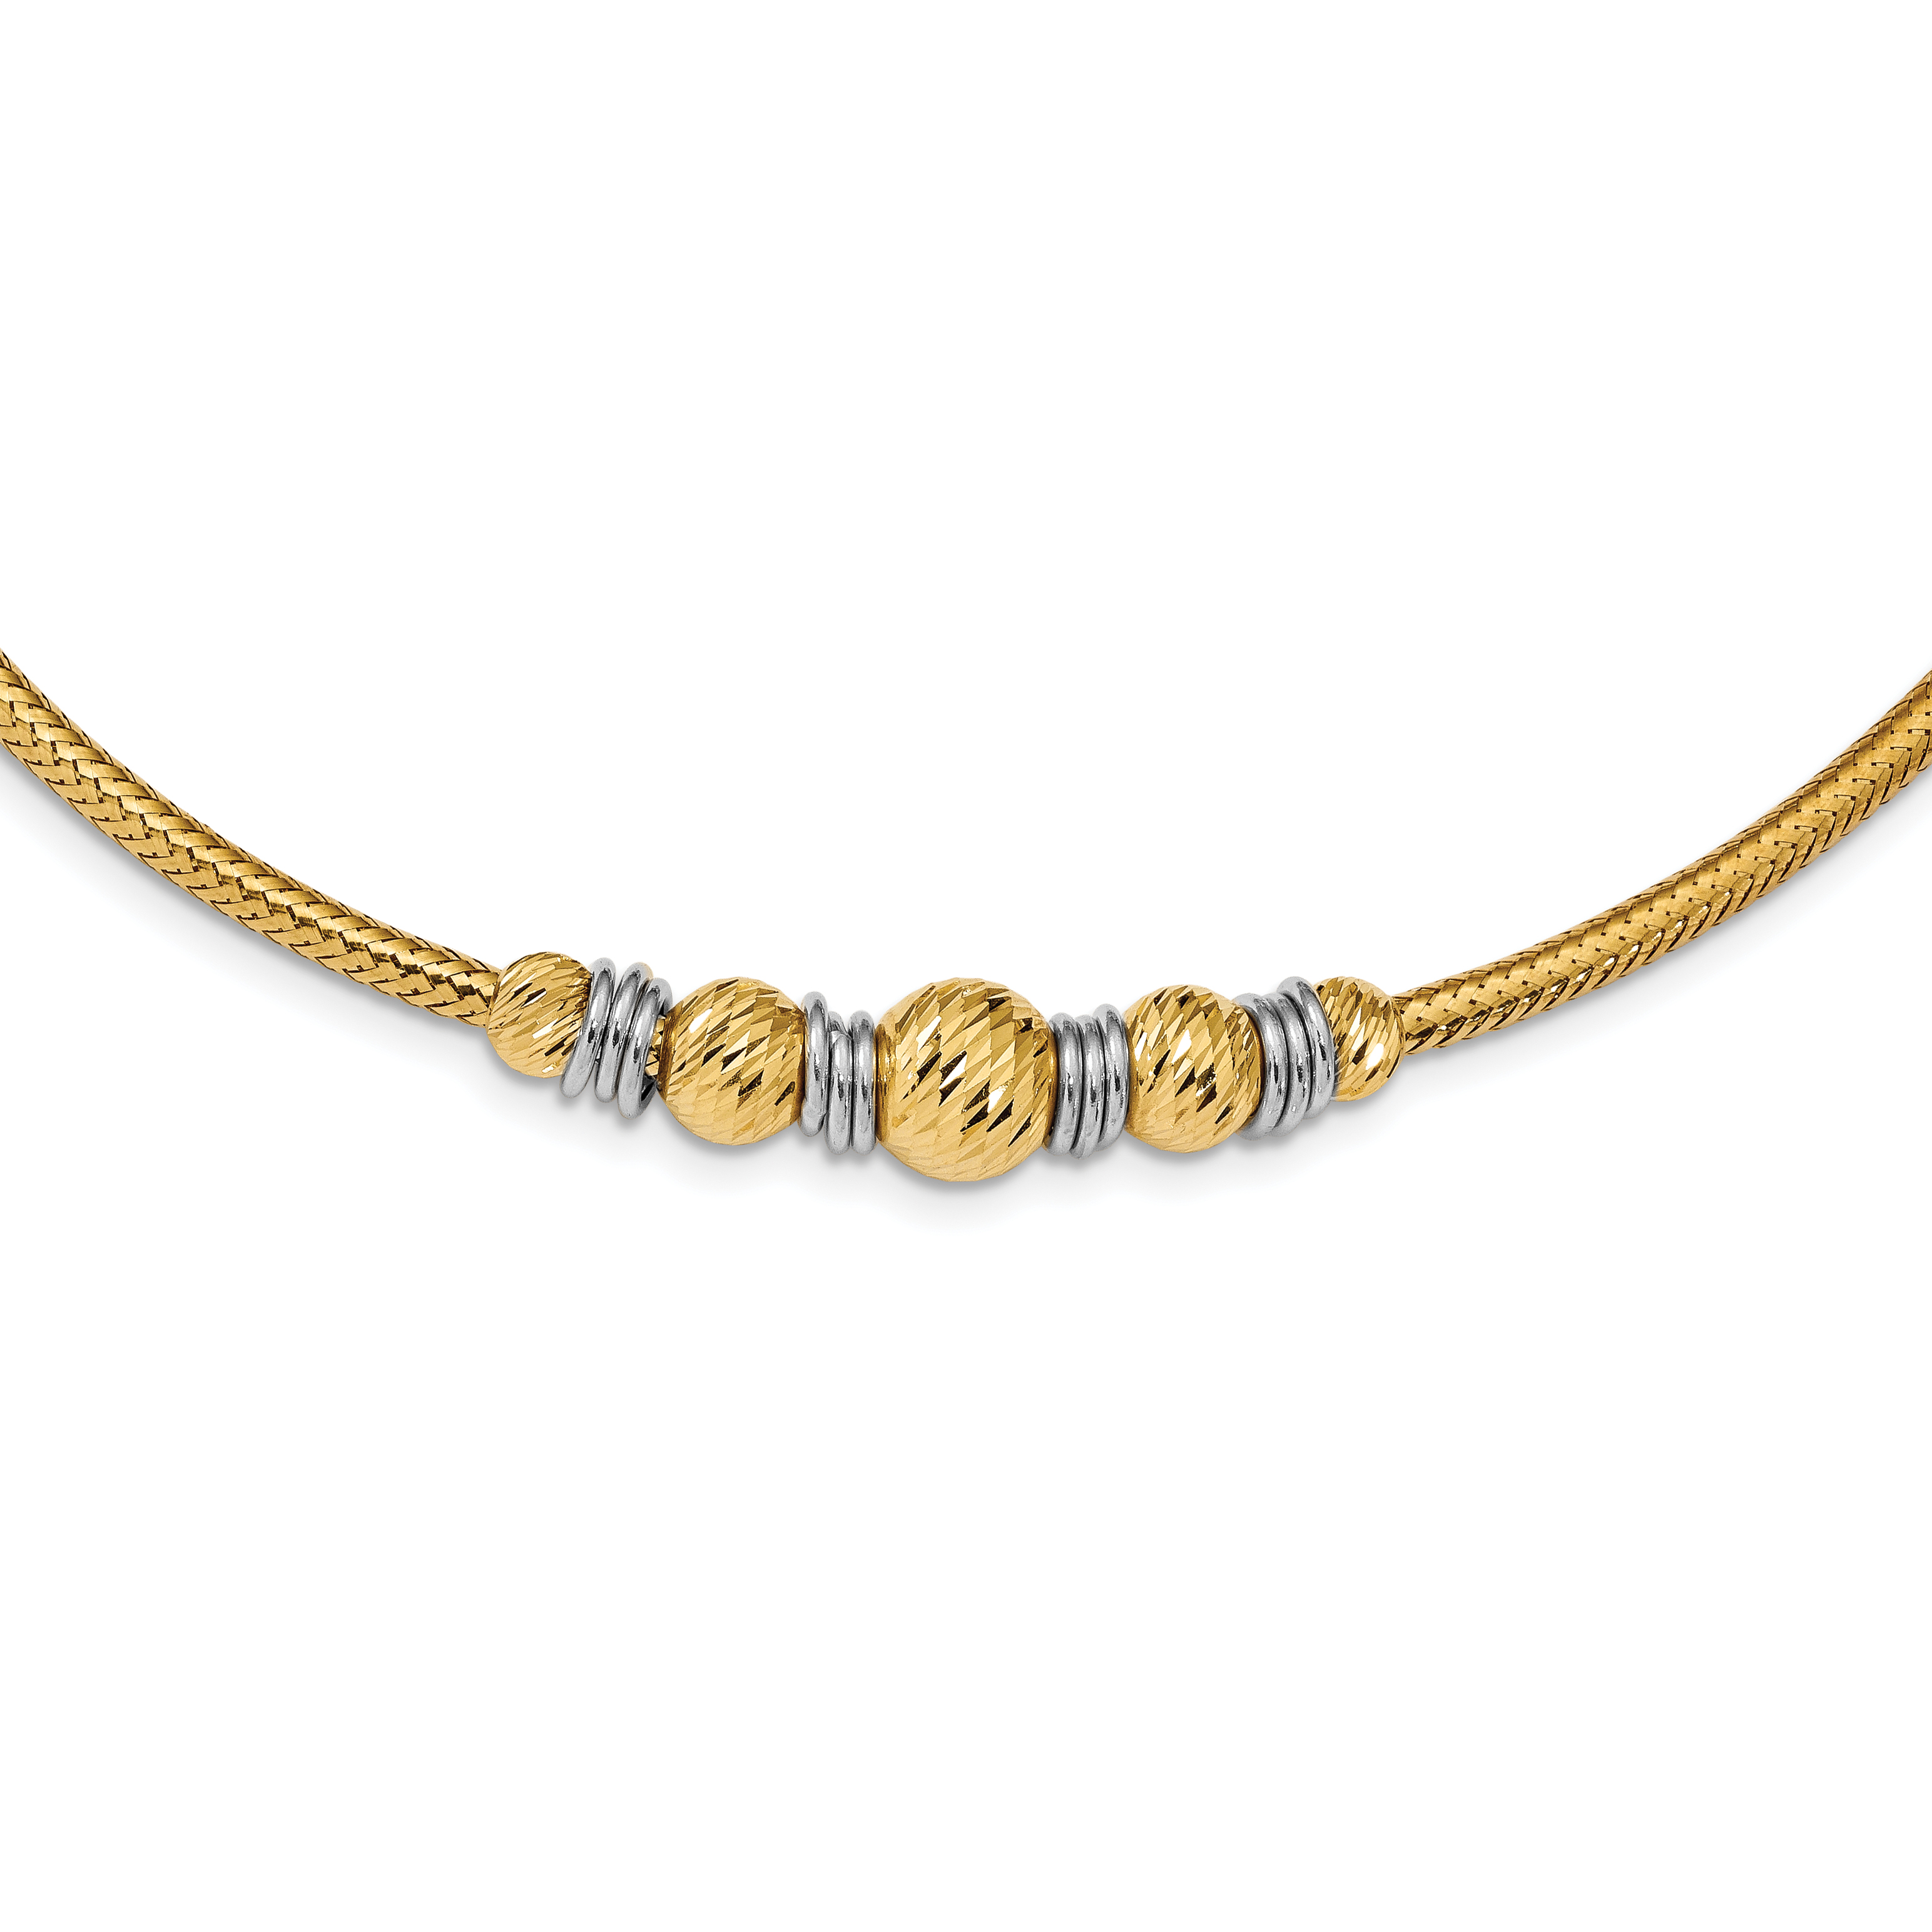 Leslie's 14K Two-tone Polished & Textured D/C w/1 in ext Necklace